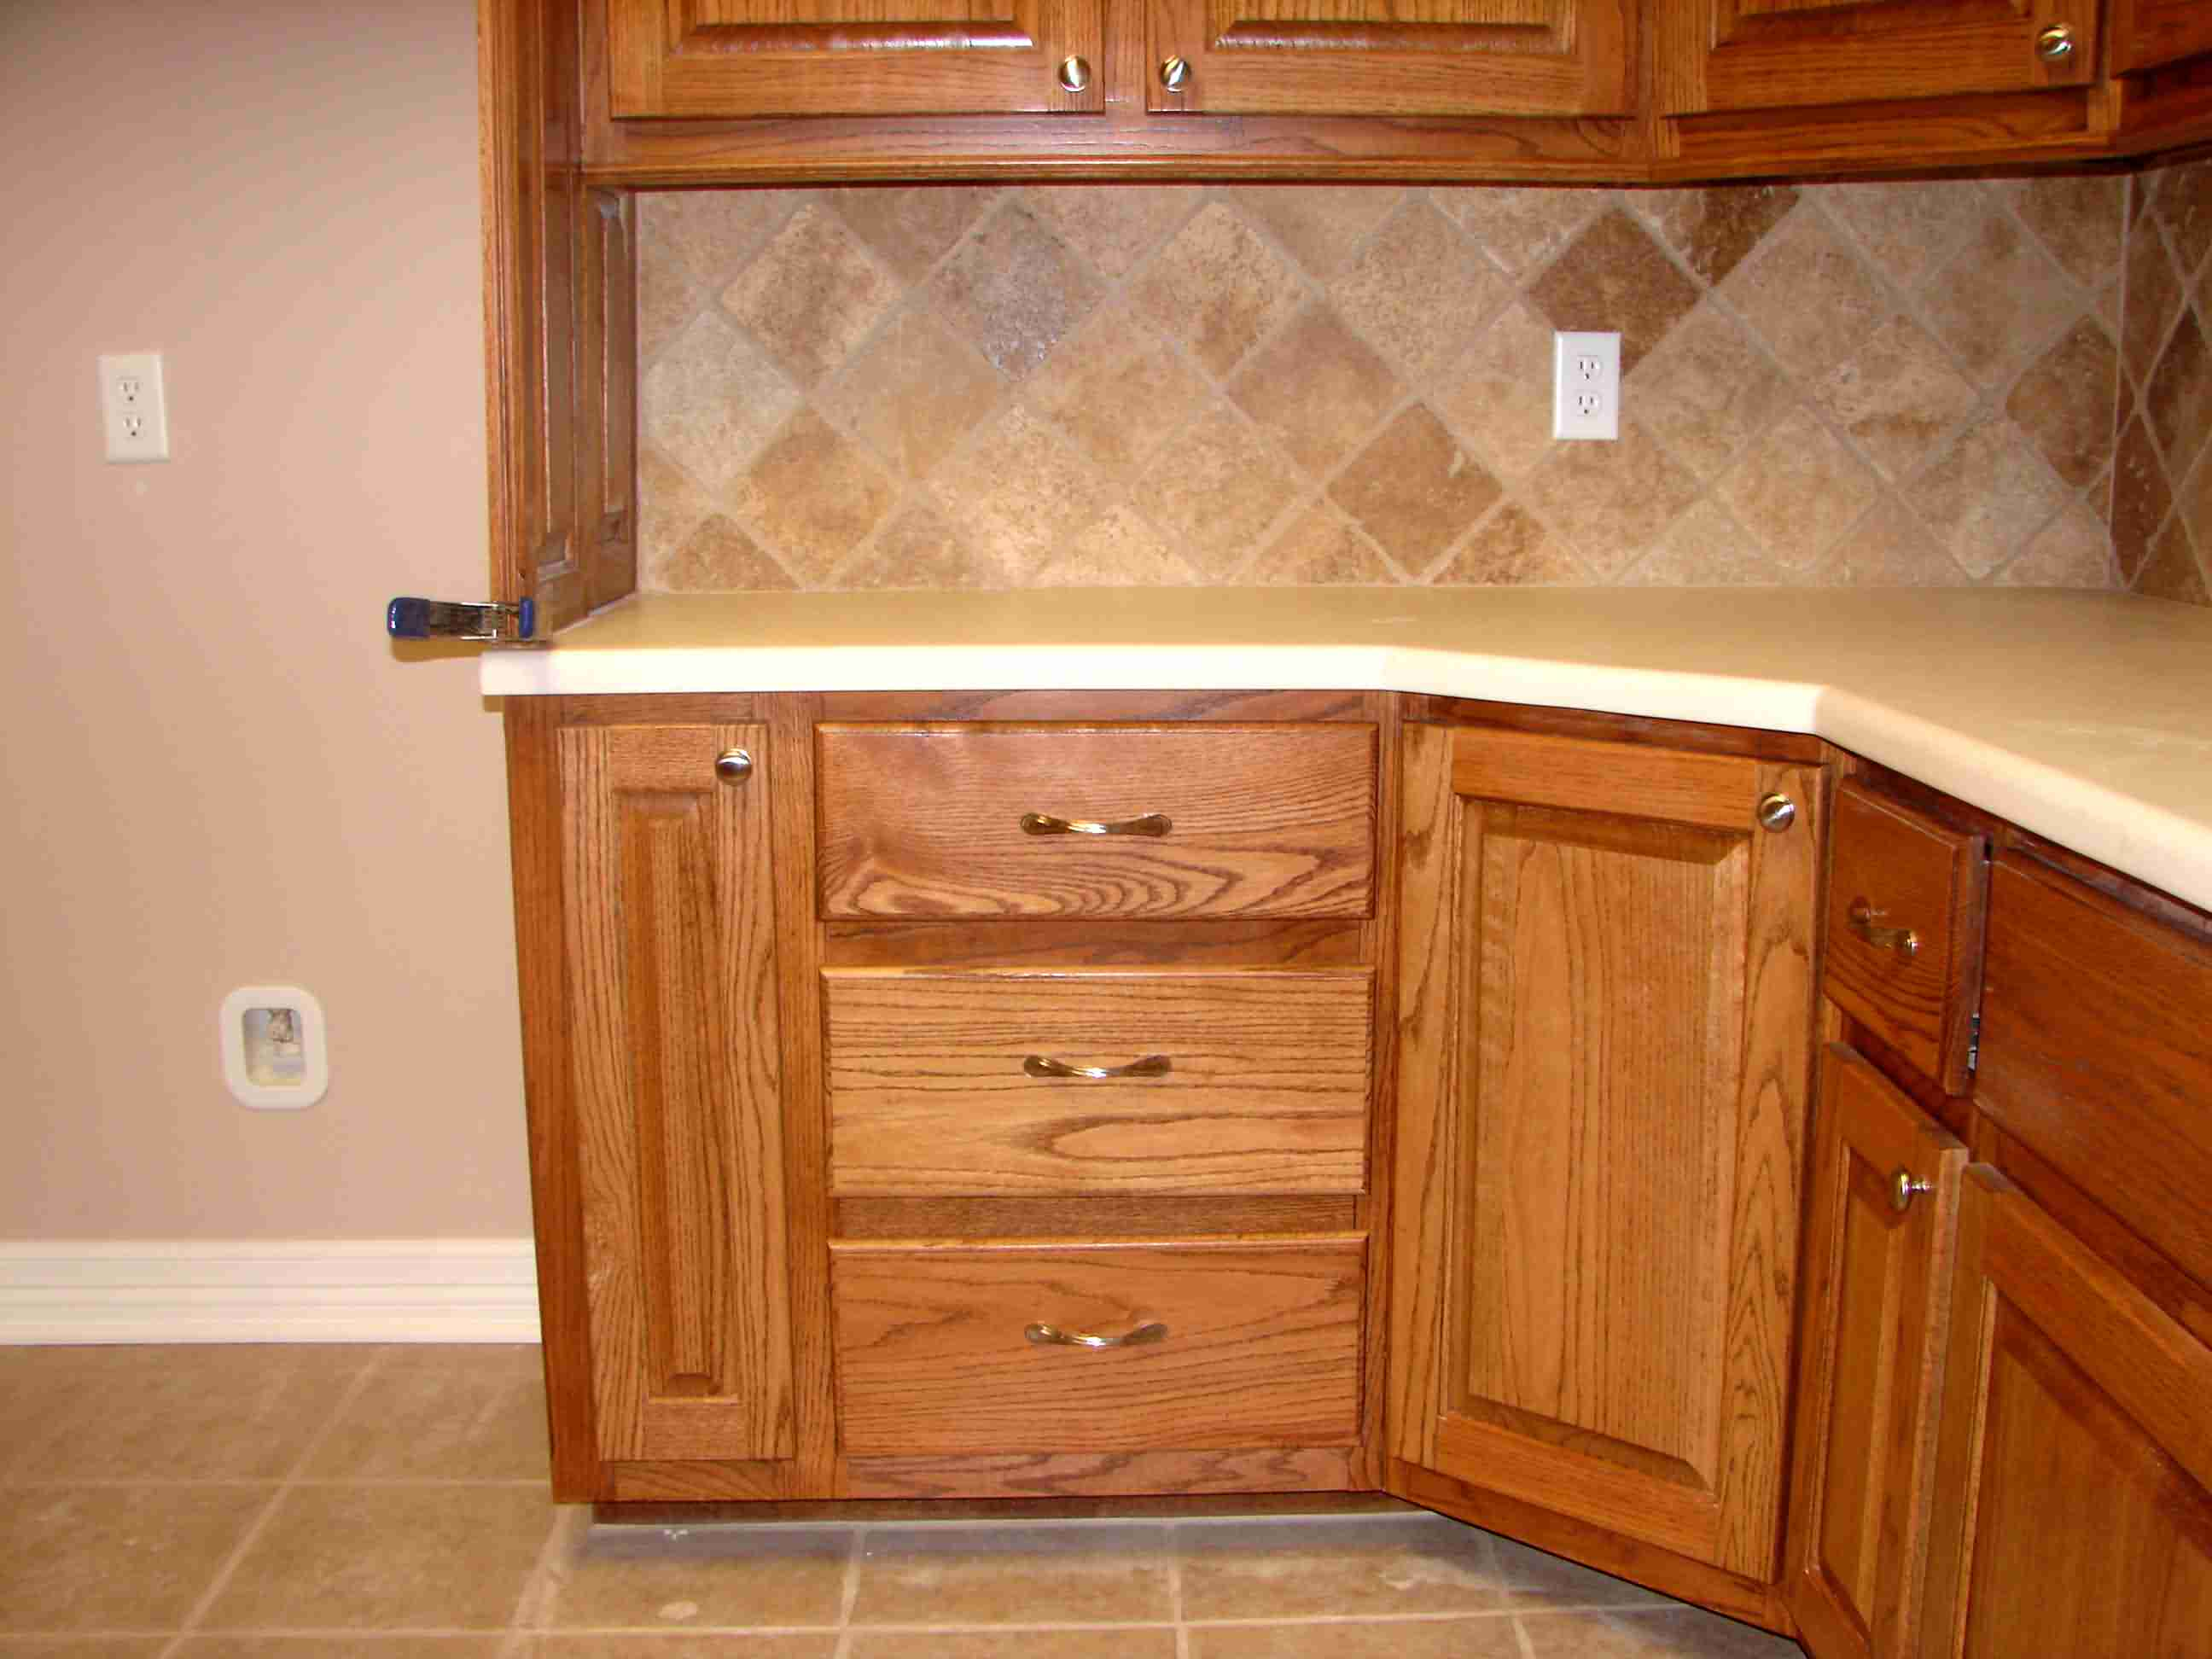 Corner Cabinet Ideas kitchen base cabinets Click here for full size image